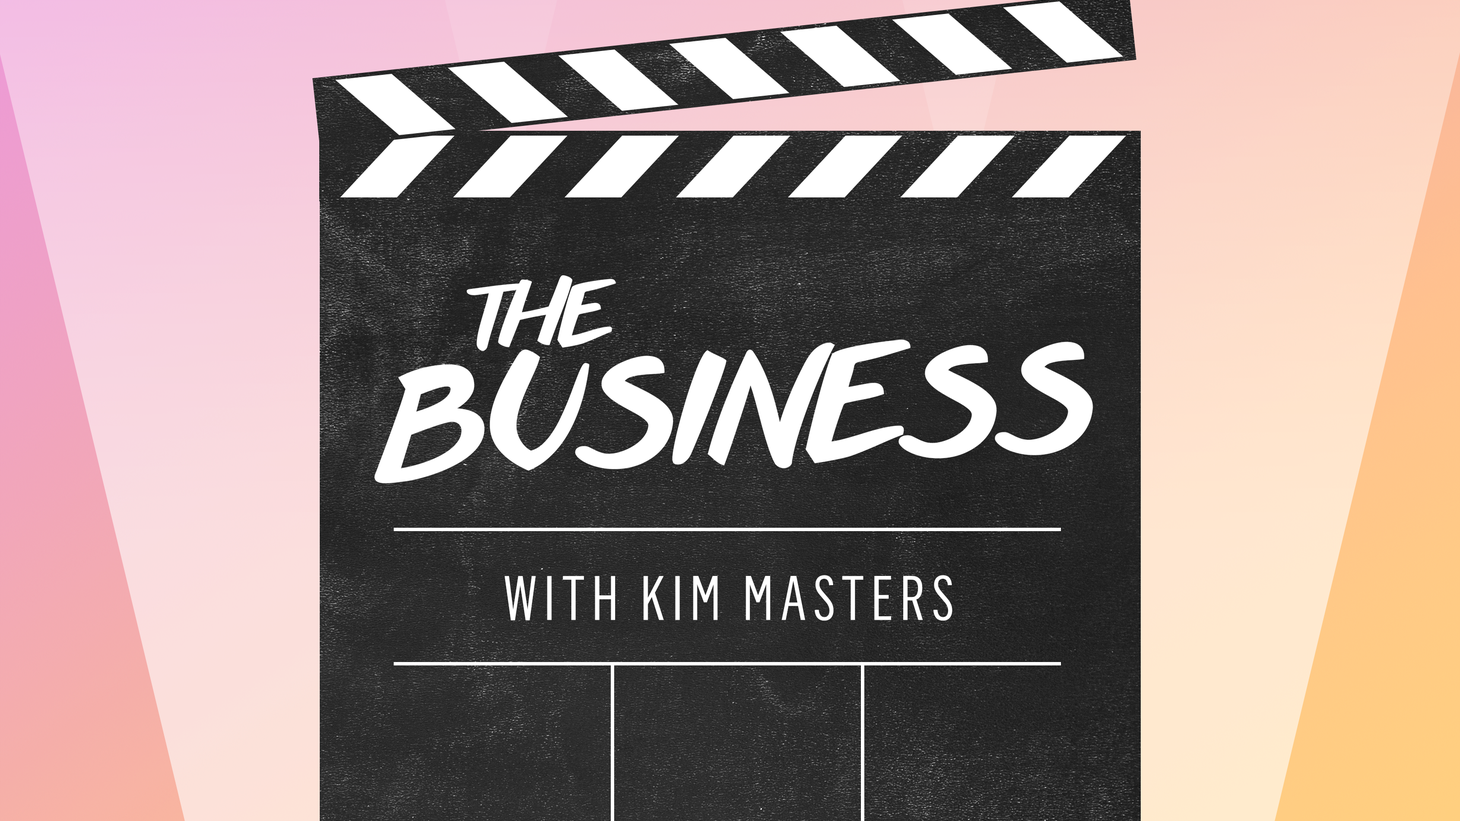 This week on The Business, NBC's the latest TV network to announce digital downloads.  [Triumph the Insult Comic Dog has been number one.  For me to poop on.  Exactly!] That is The Business, with Claude Brodesser from National Public Radio.